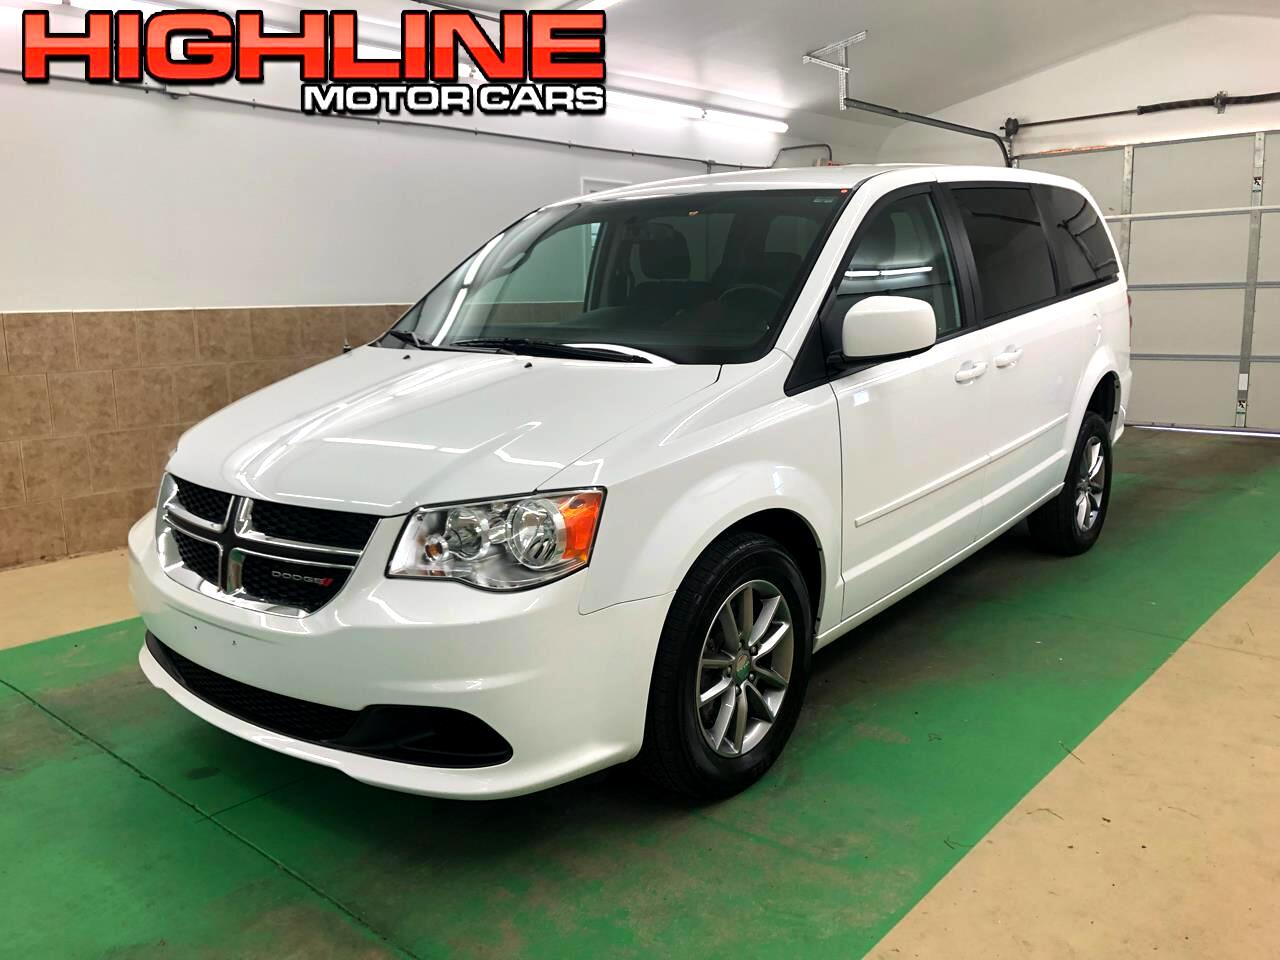 2016 Dodge Grand Caravan 4dr Wgn SE Plus